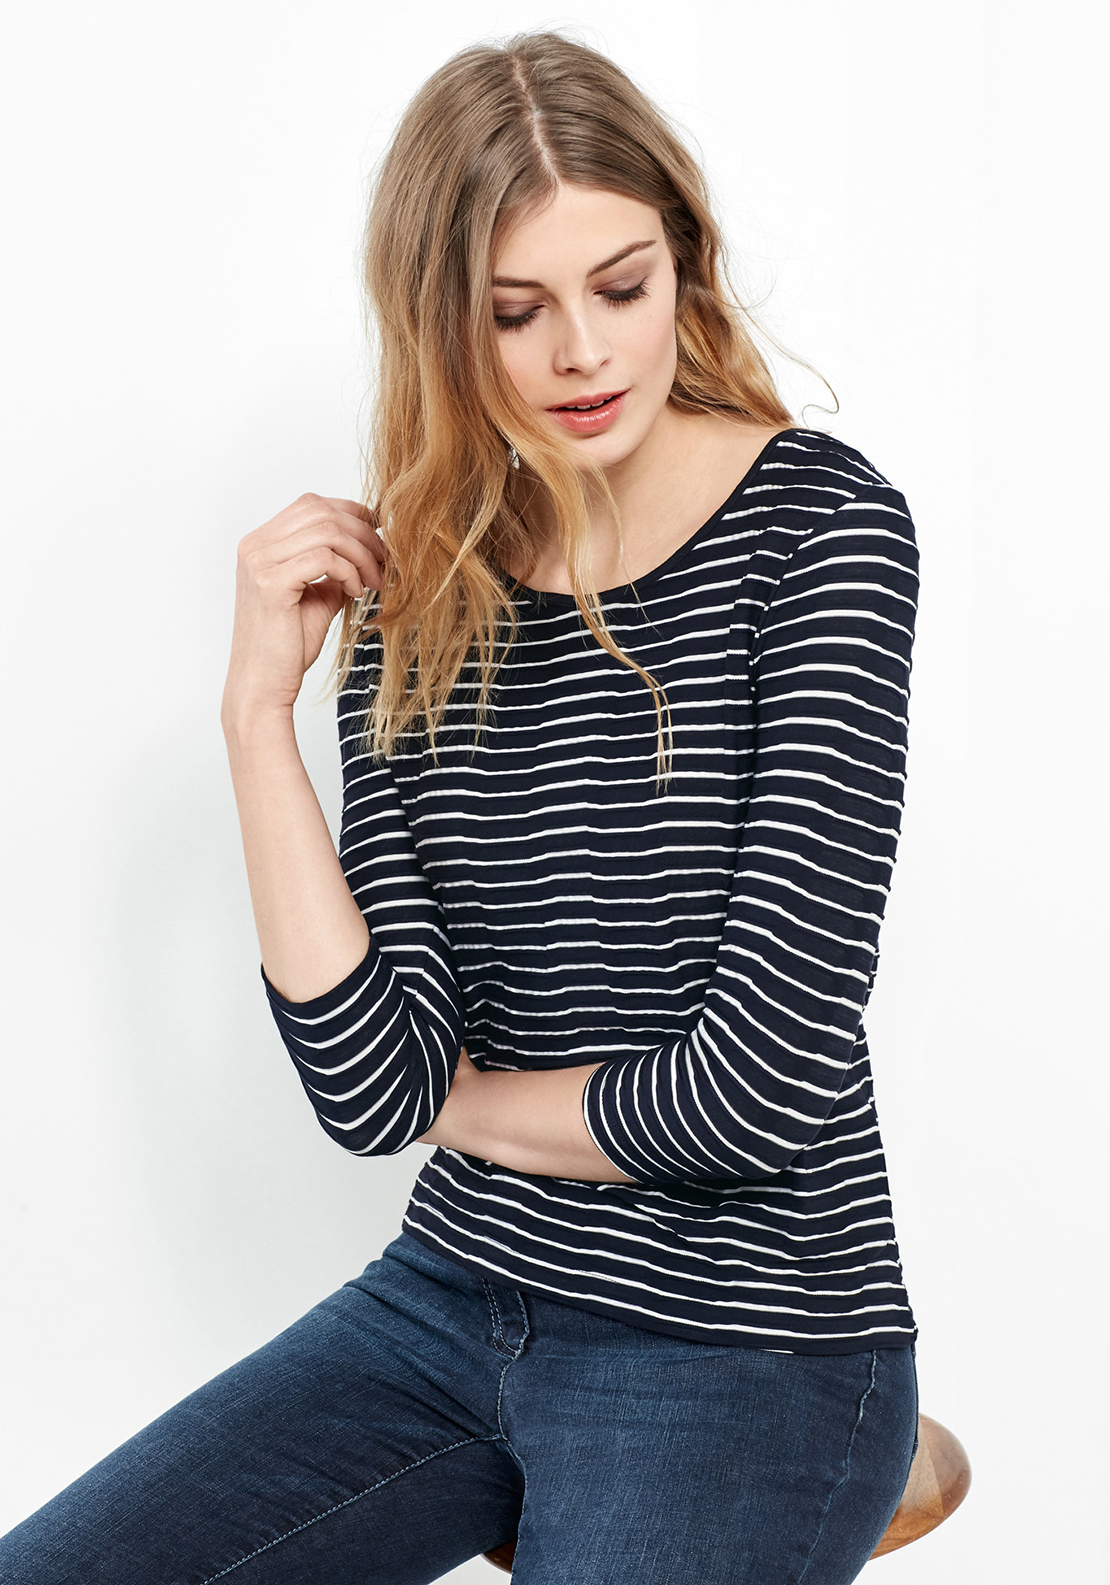 Gerry Weber Textured Striped Top, Navy & White